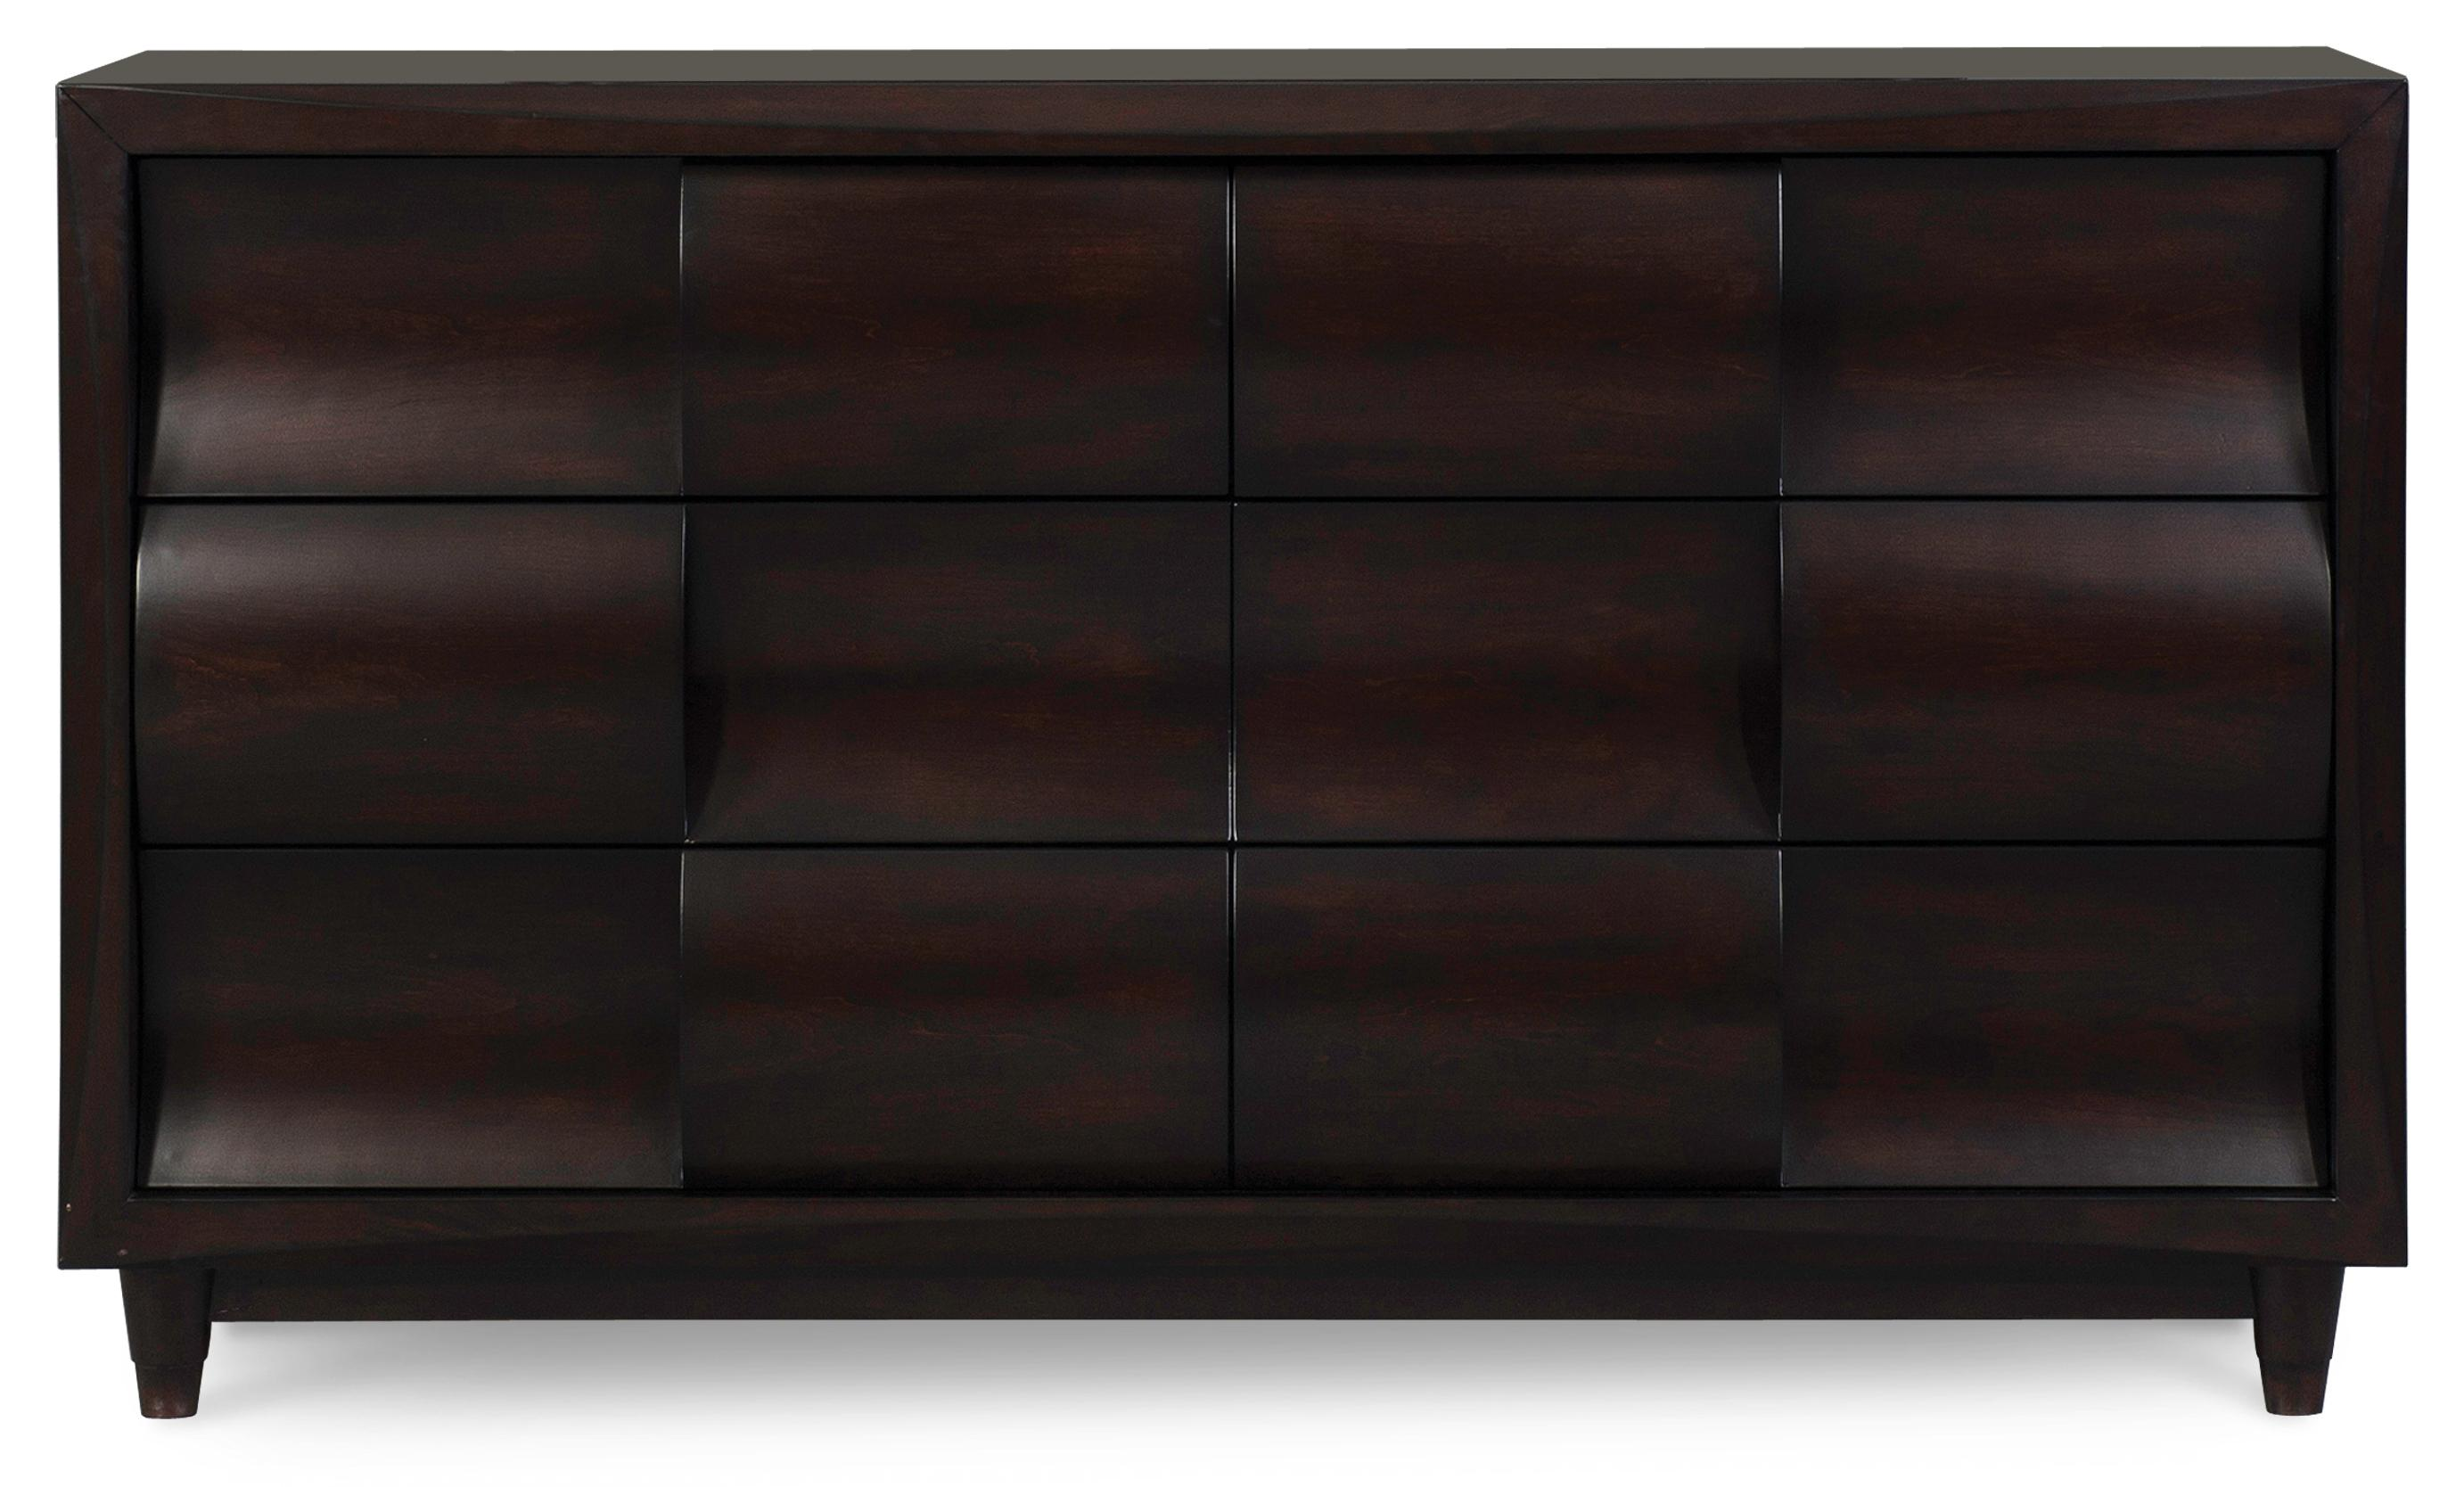 Morris Home Furnishings Fairfield Fairfield Drawer Dresser - Item Number: B1794-20